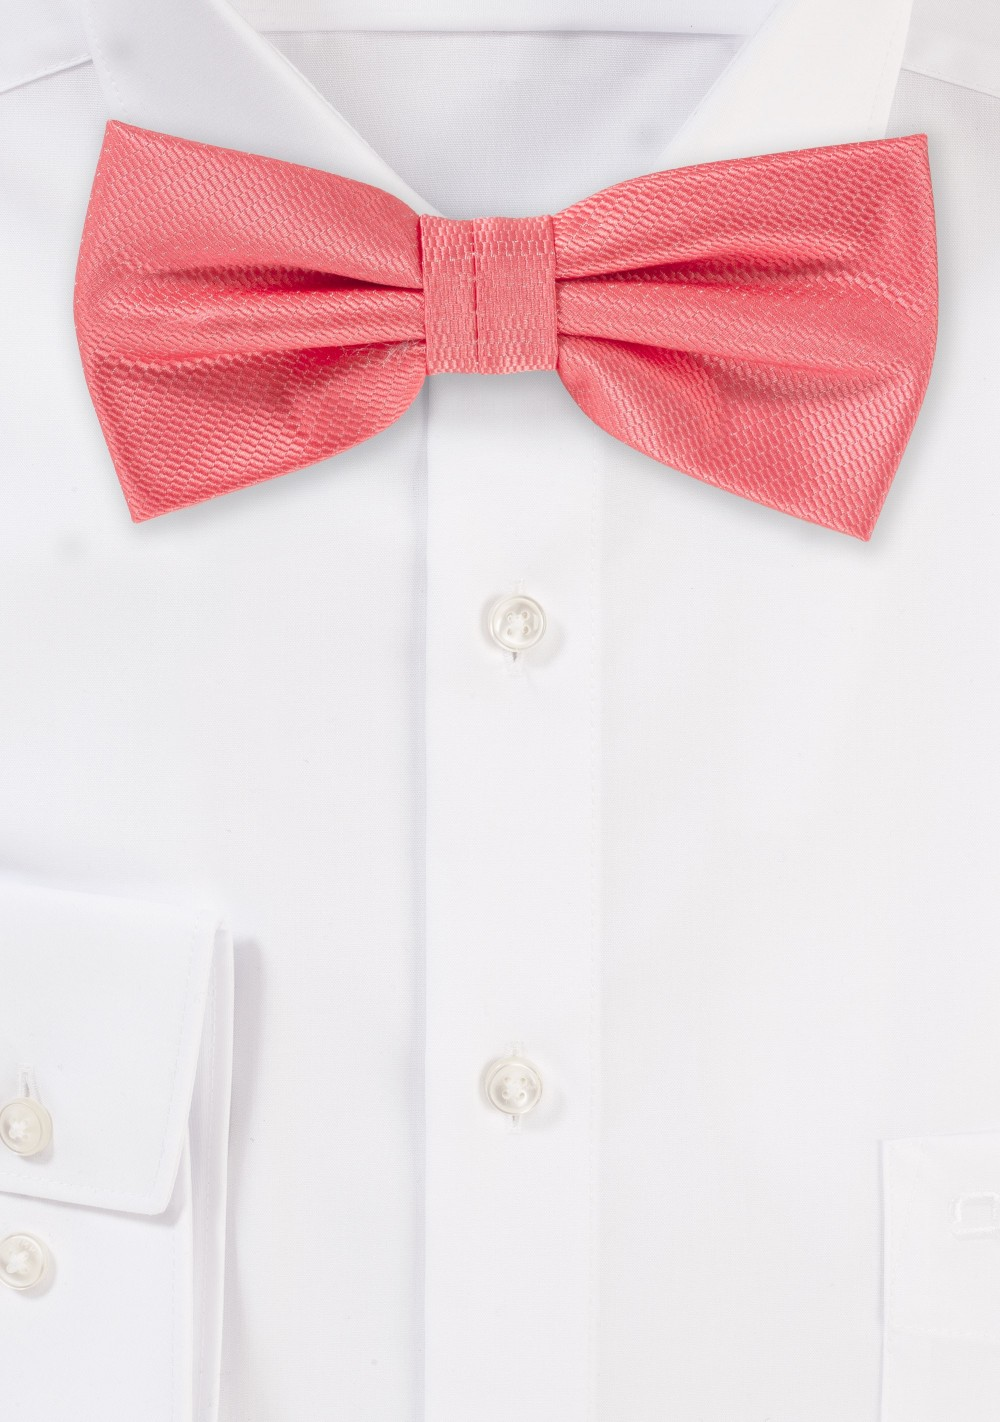 Dressy Bow Tie in Coral Reef